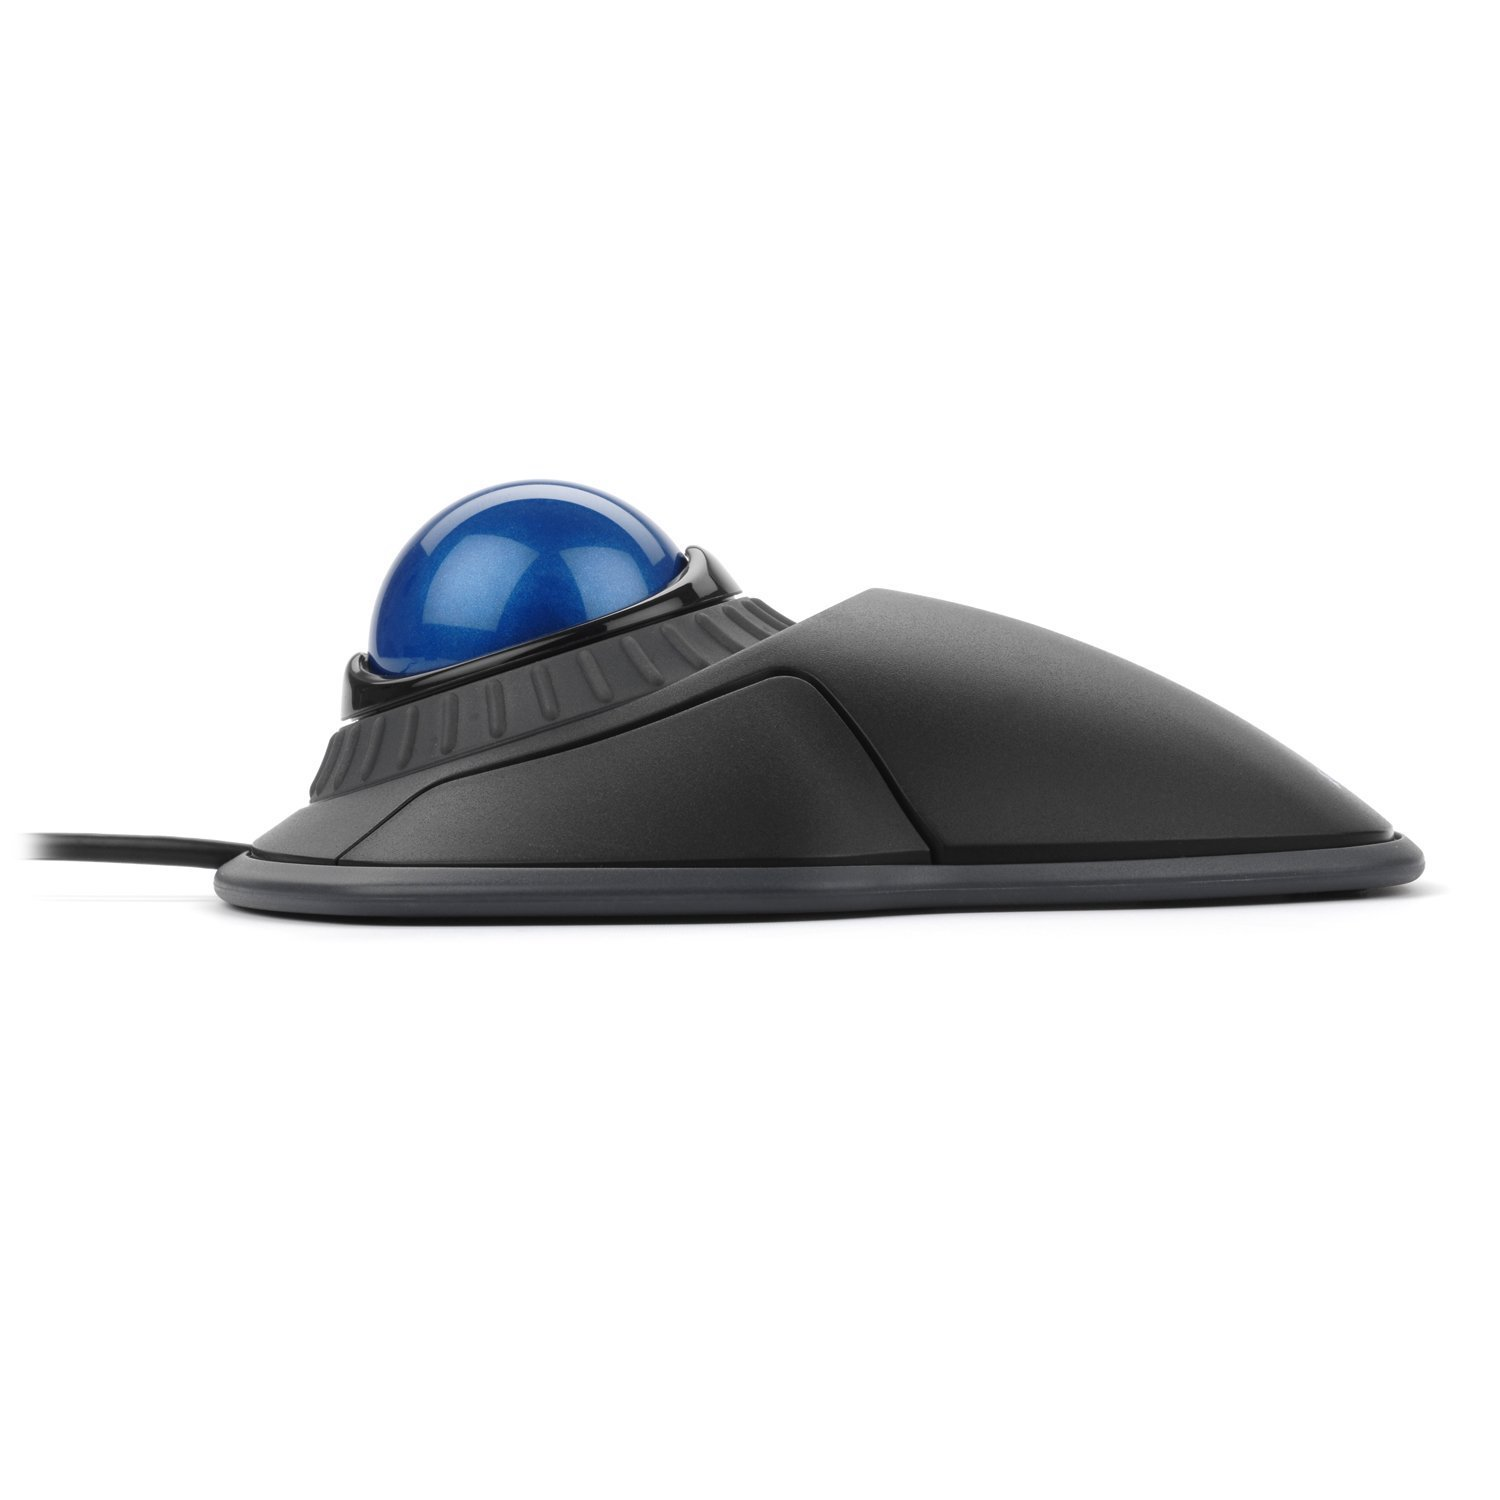 Kensington Orbit Mouse with Scroll Ring